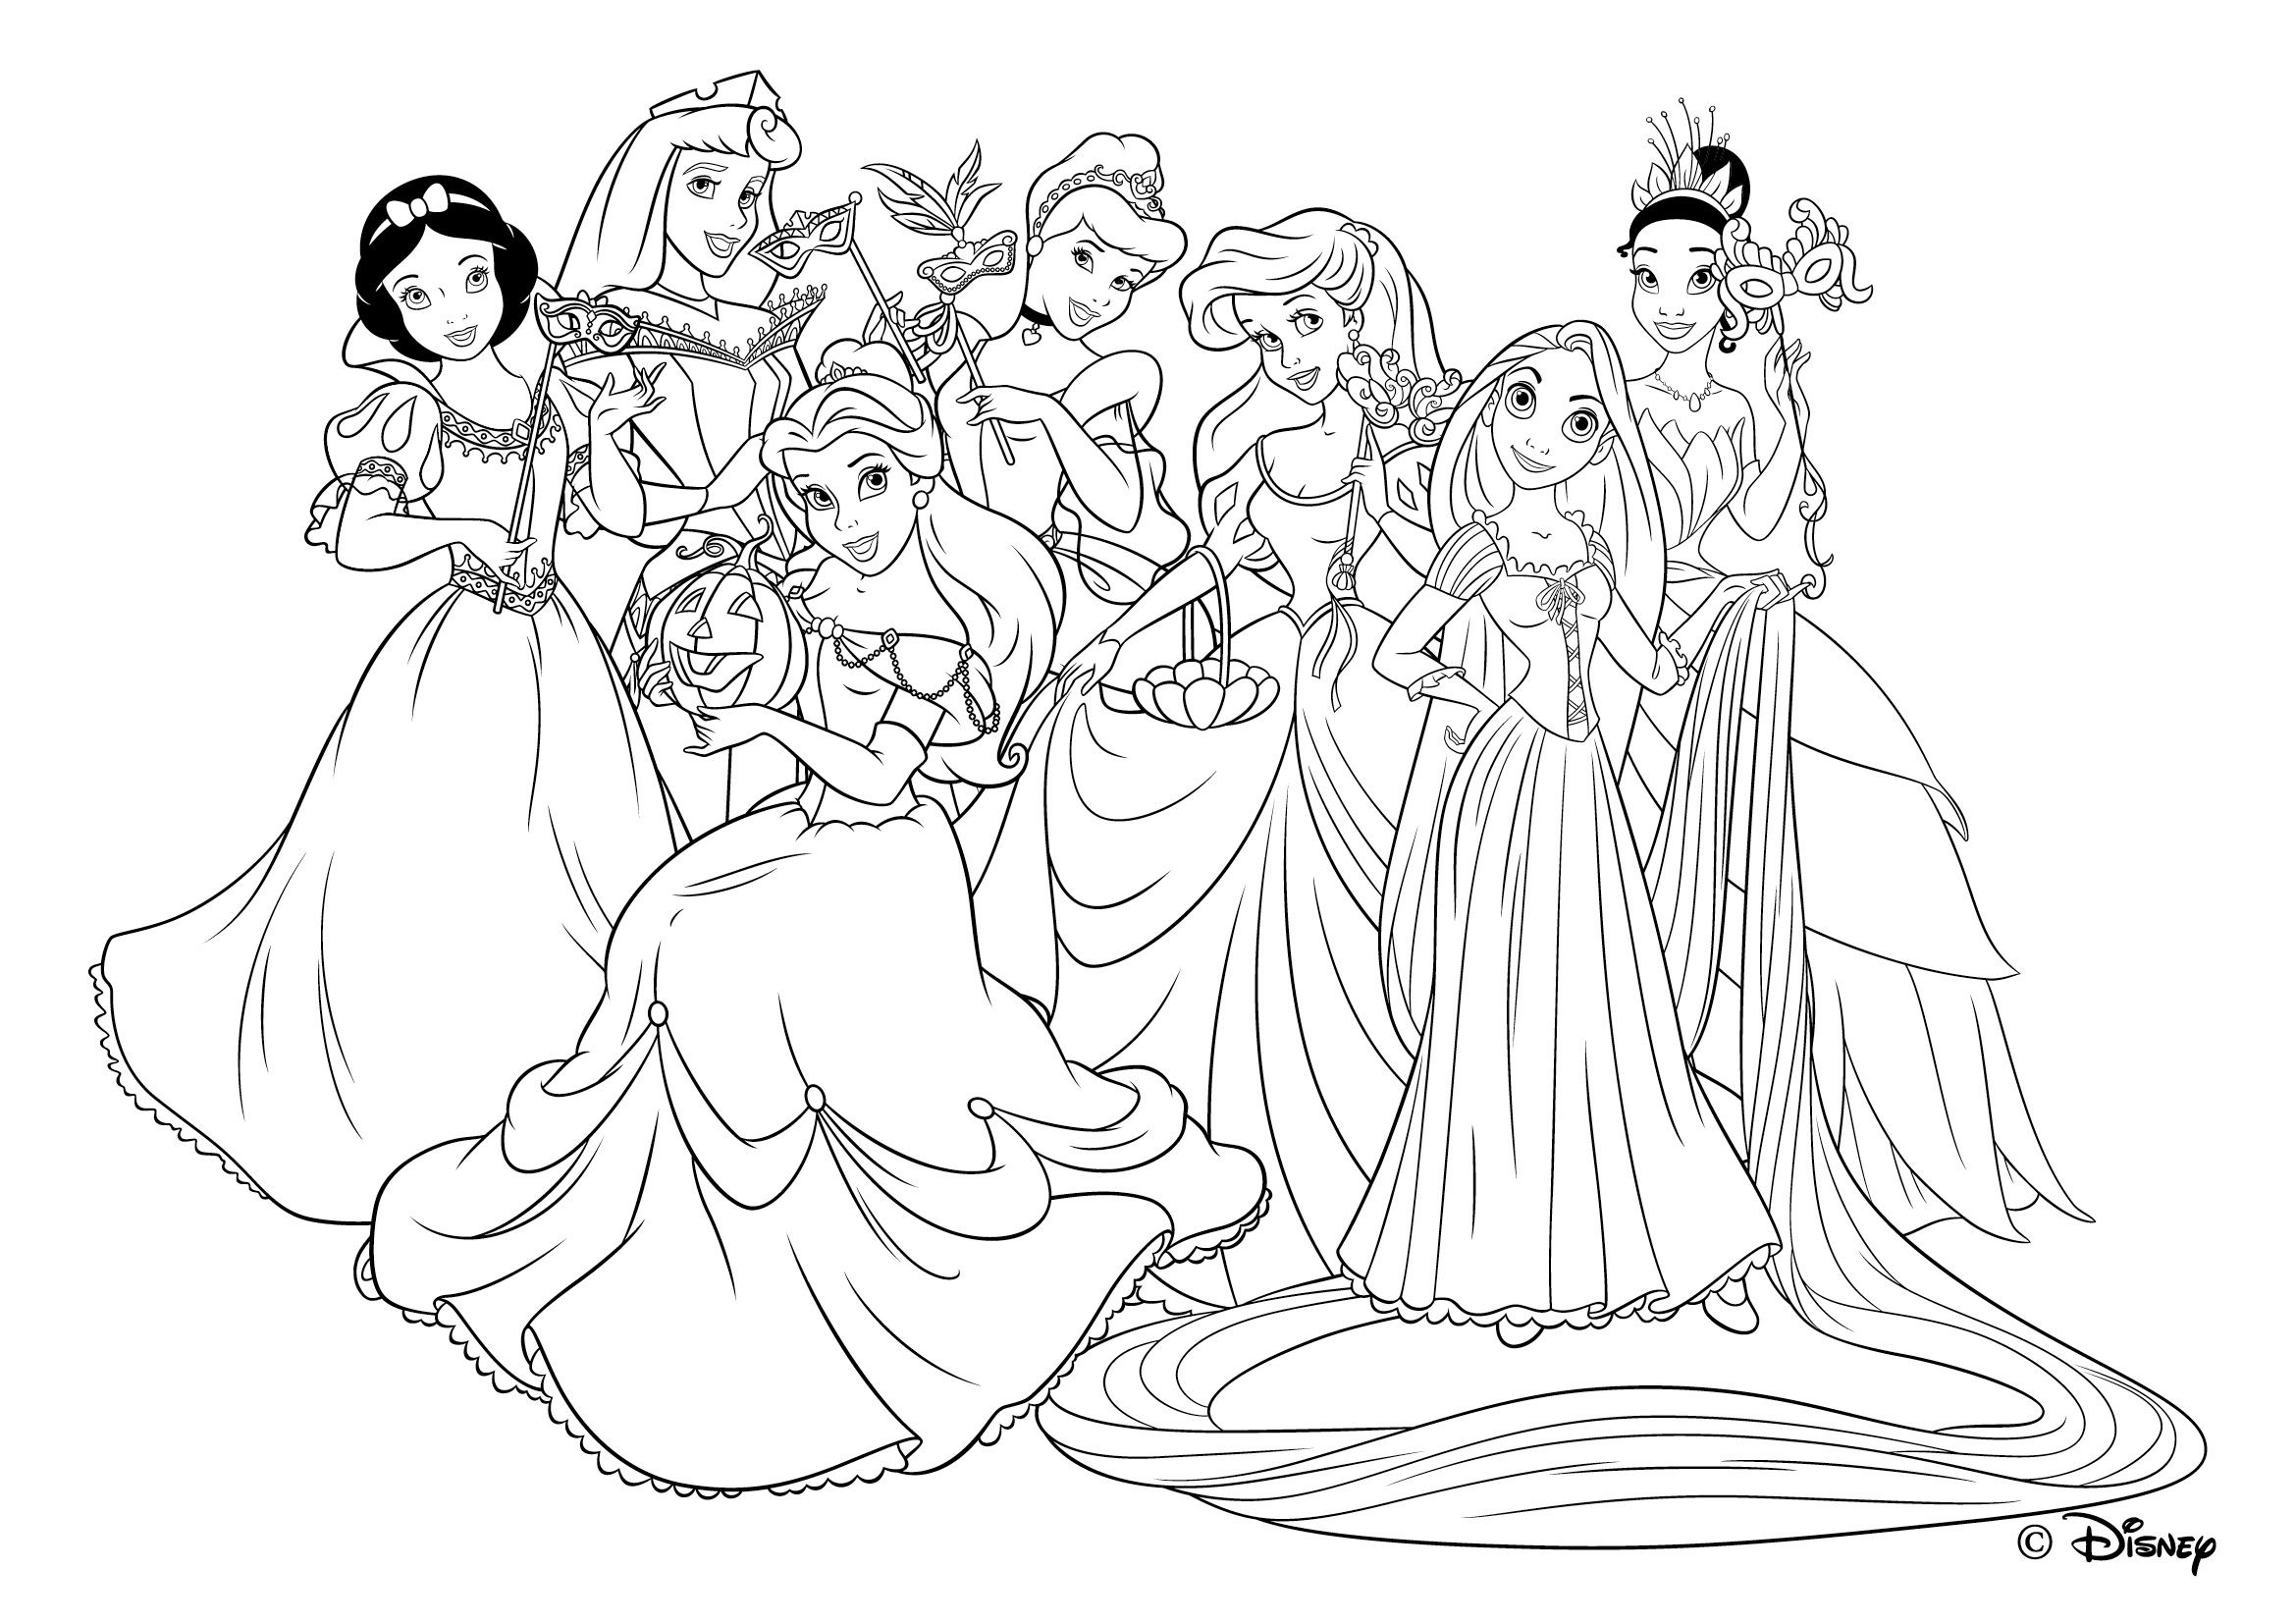 Luxe Dessin Coloriage Princesses Disney